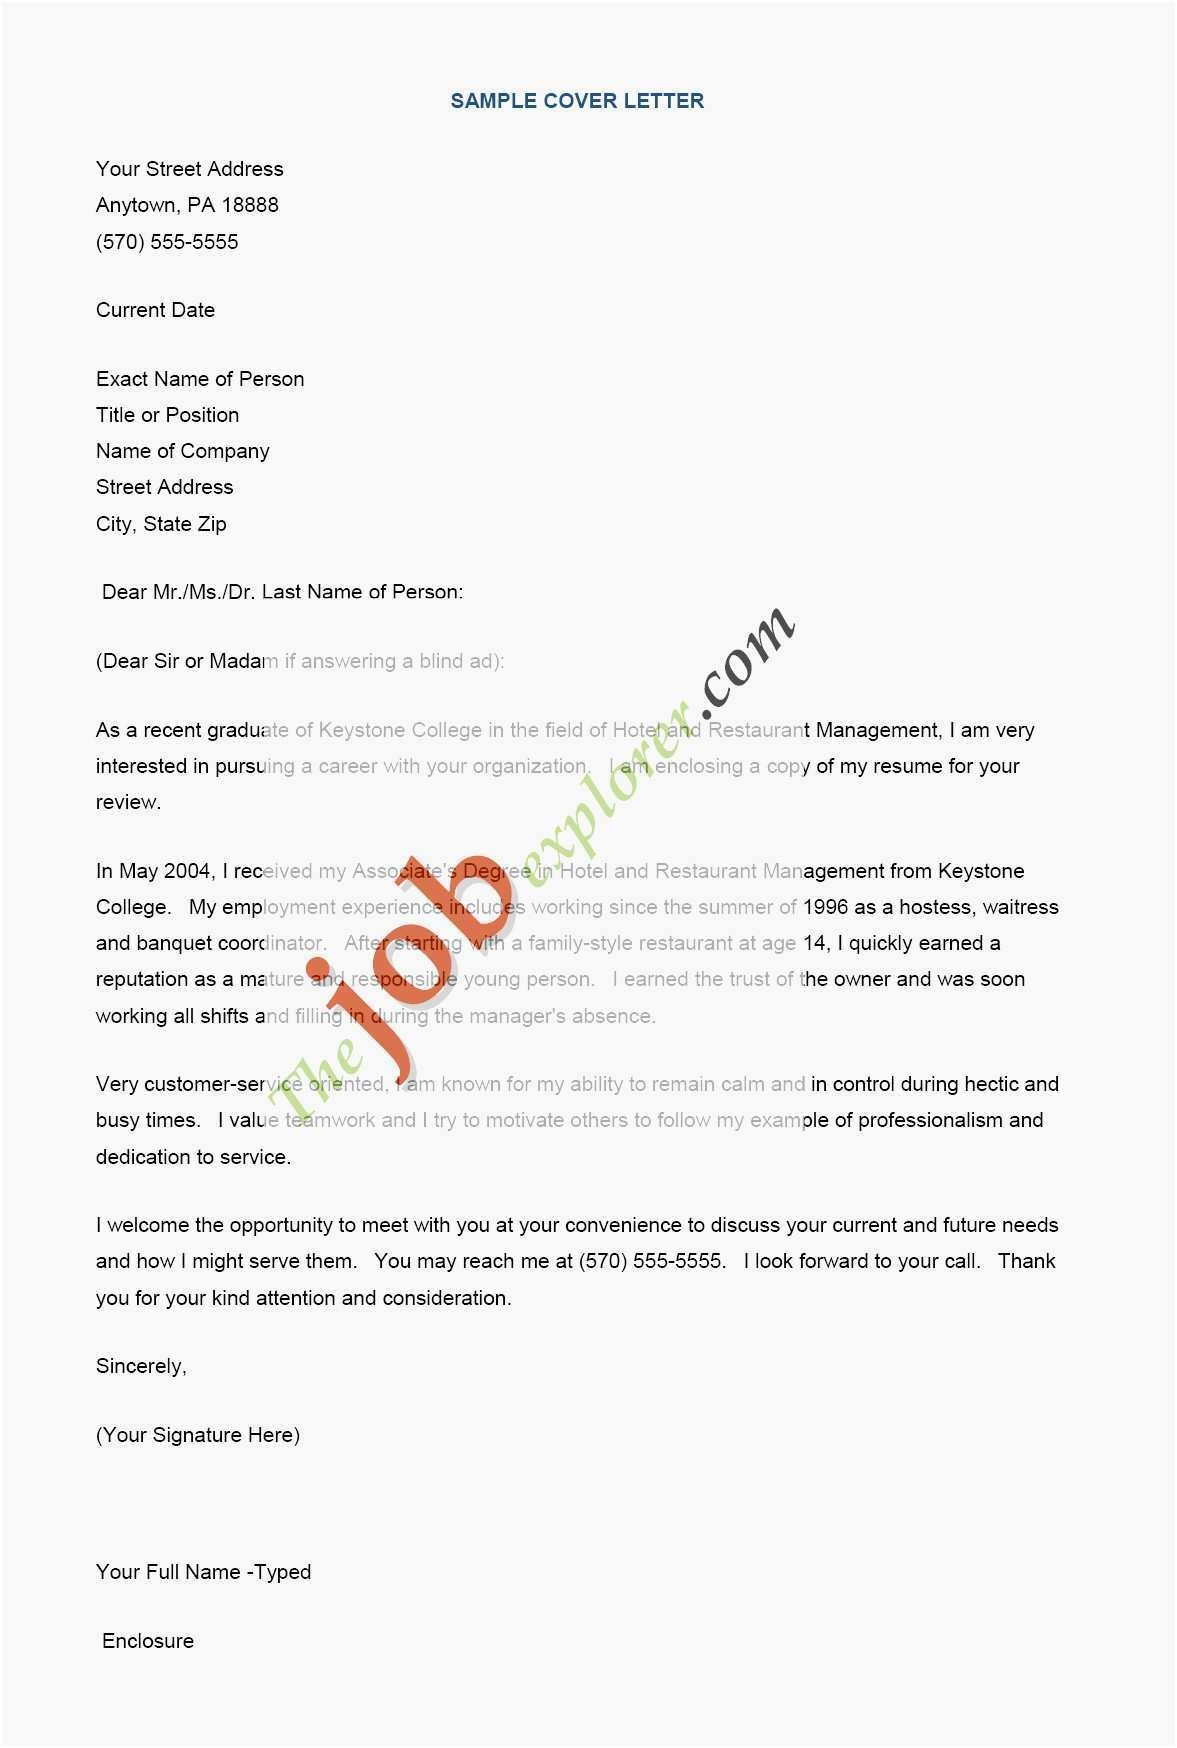 Resume Help Near Me - Need Help with Resume Awesome Making A Resume Luxury Awesome